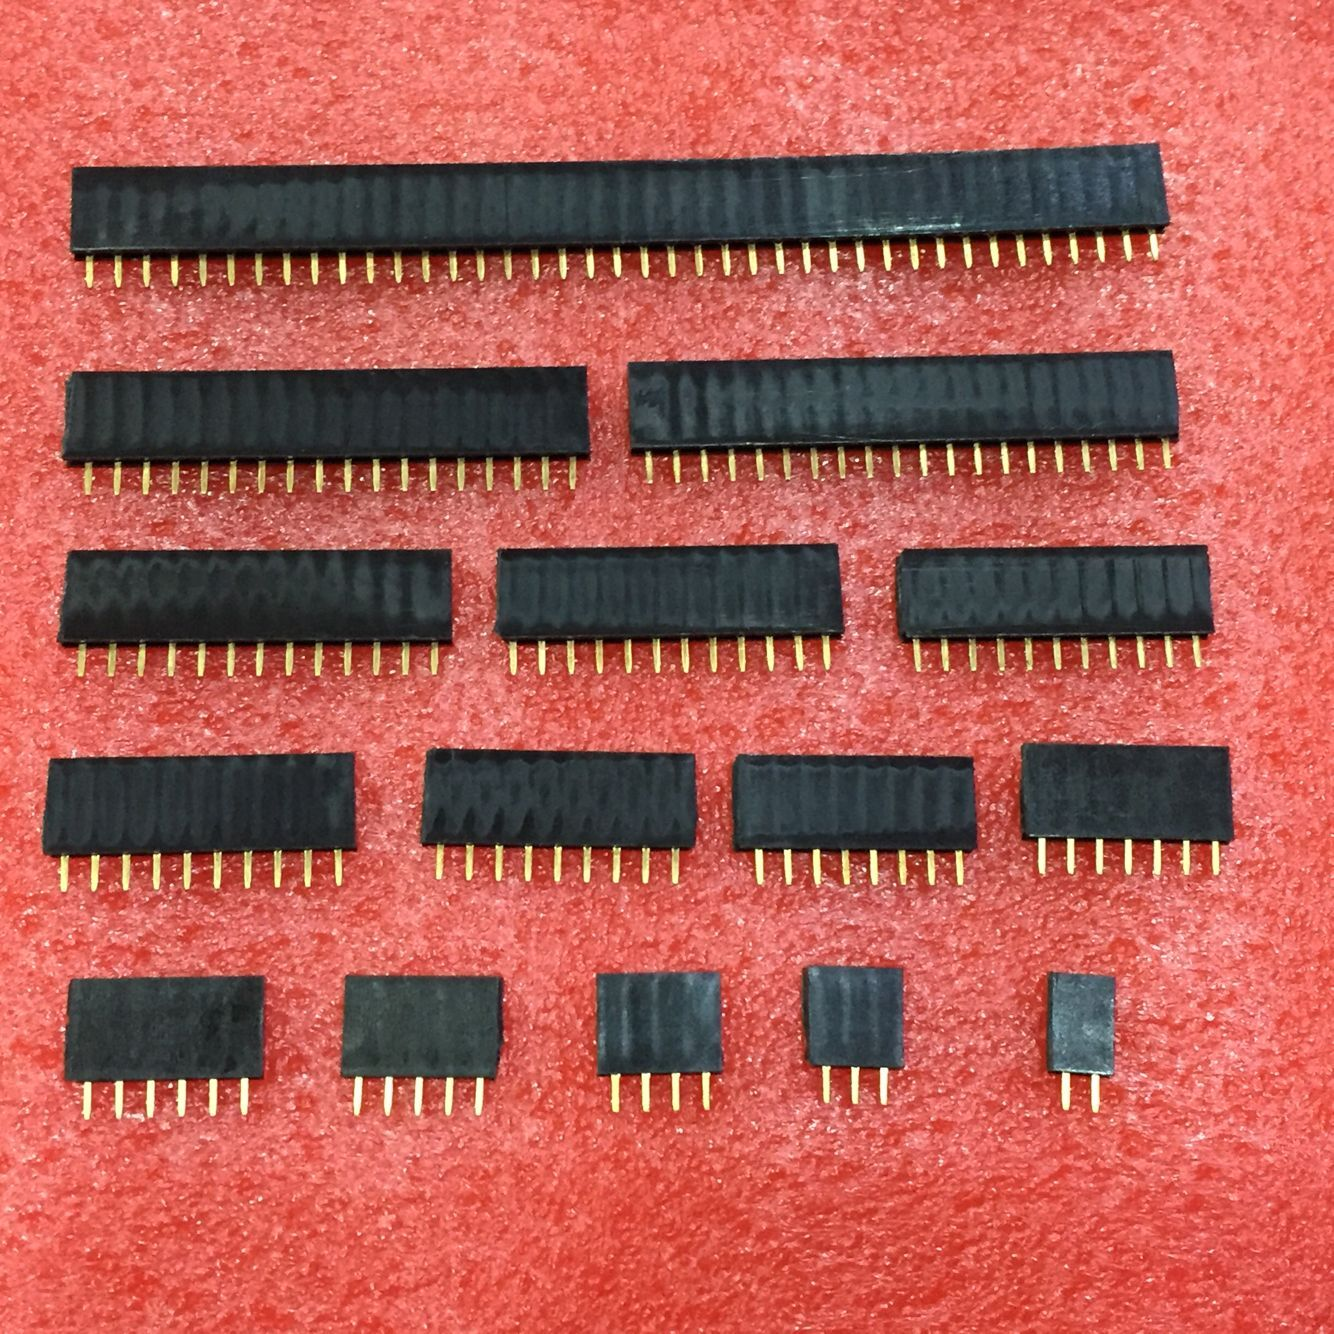 Single row <font><b>female</b></font> <font><b>2.54mm</b></font> Pitch PCB <font><b>Female</b></font> Pin Header <font><b>Connector</b></font> Straight Single Row 2/3/4/5/6/7/8/9/10/11/12/13/14/15/16/20/40Pin image